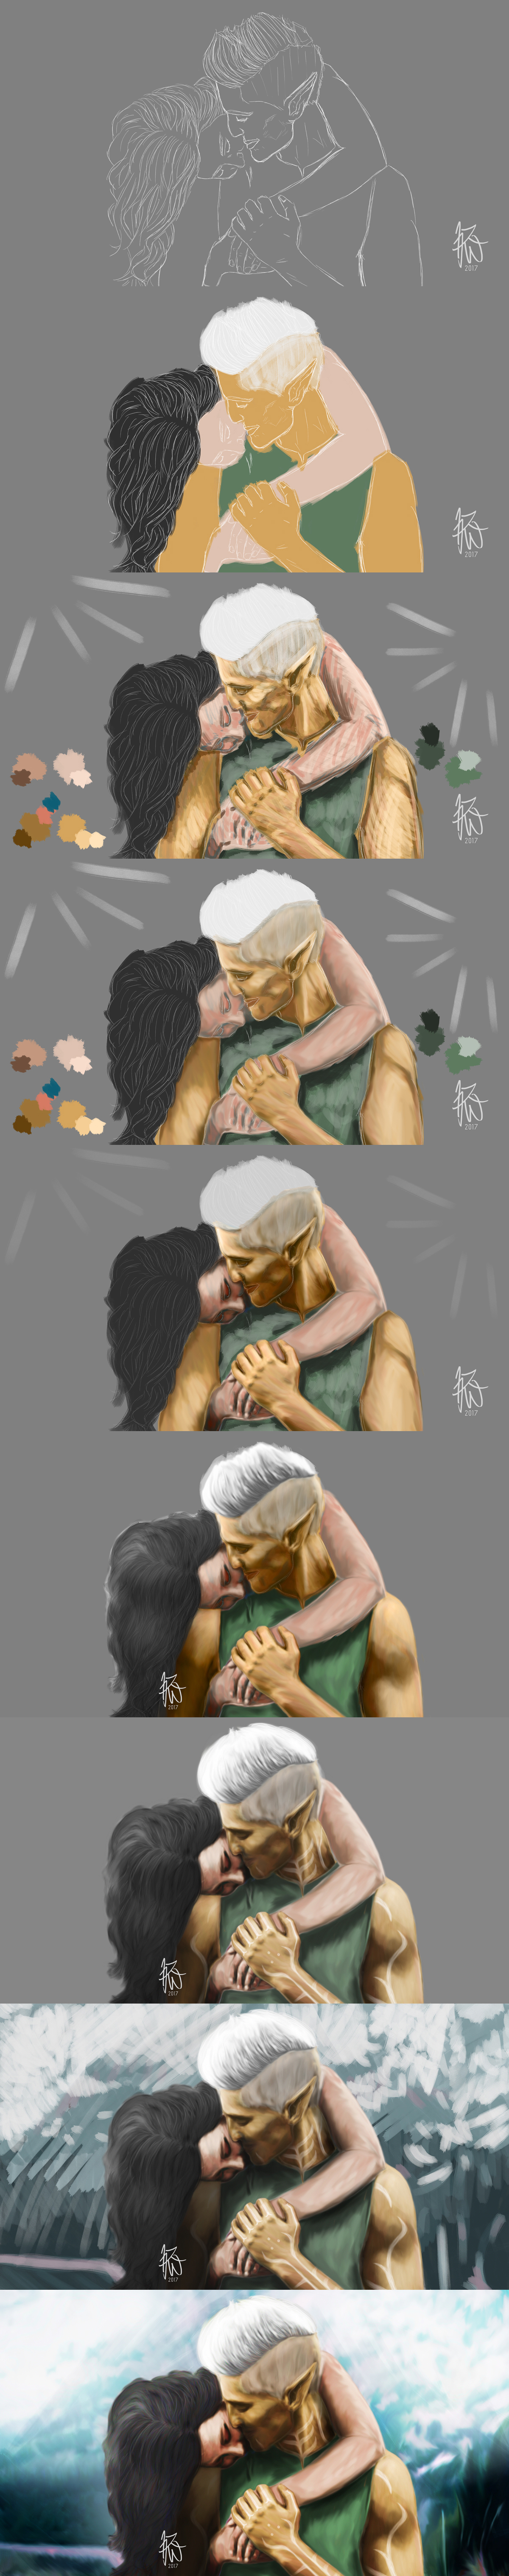 Affection - WIP by Auridesion